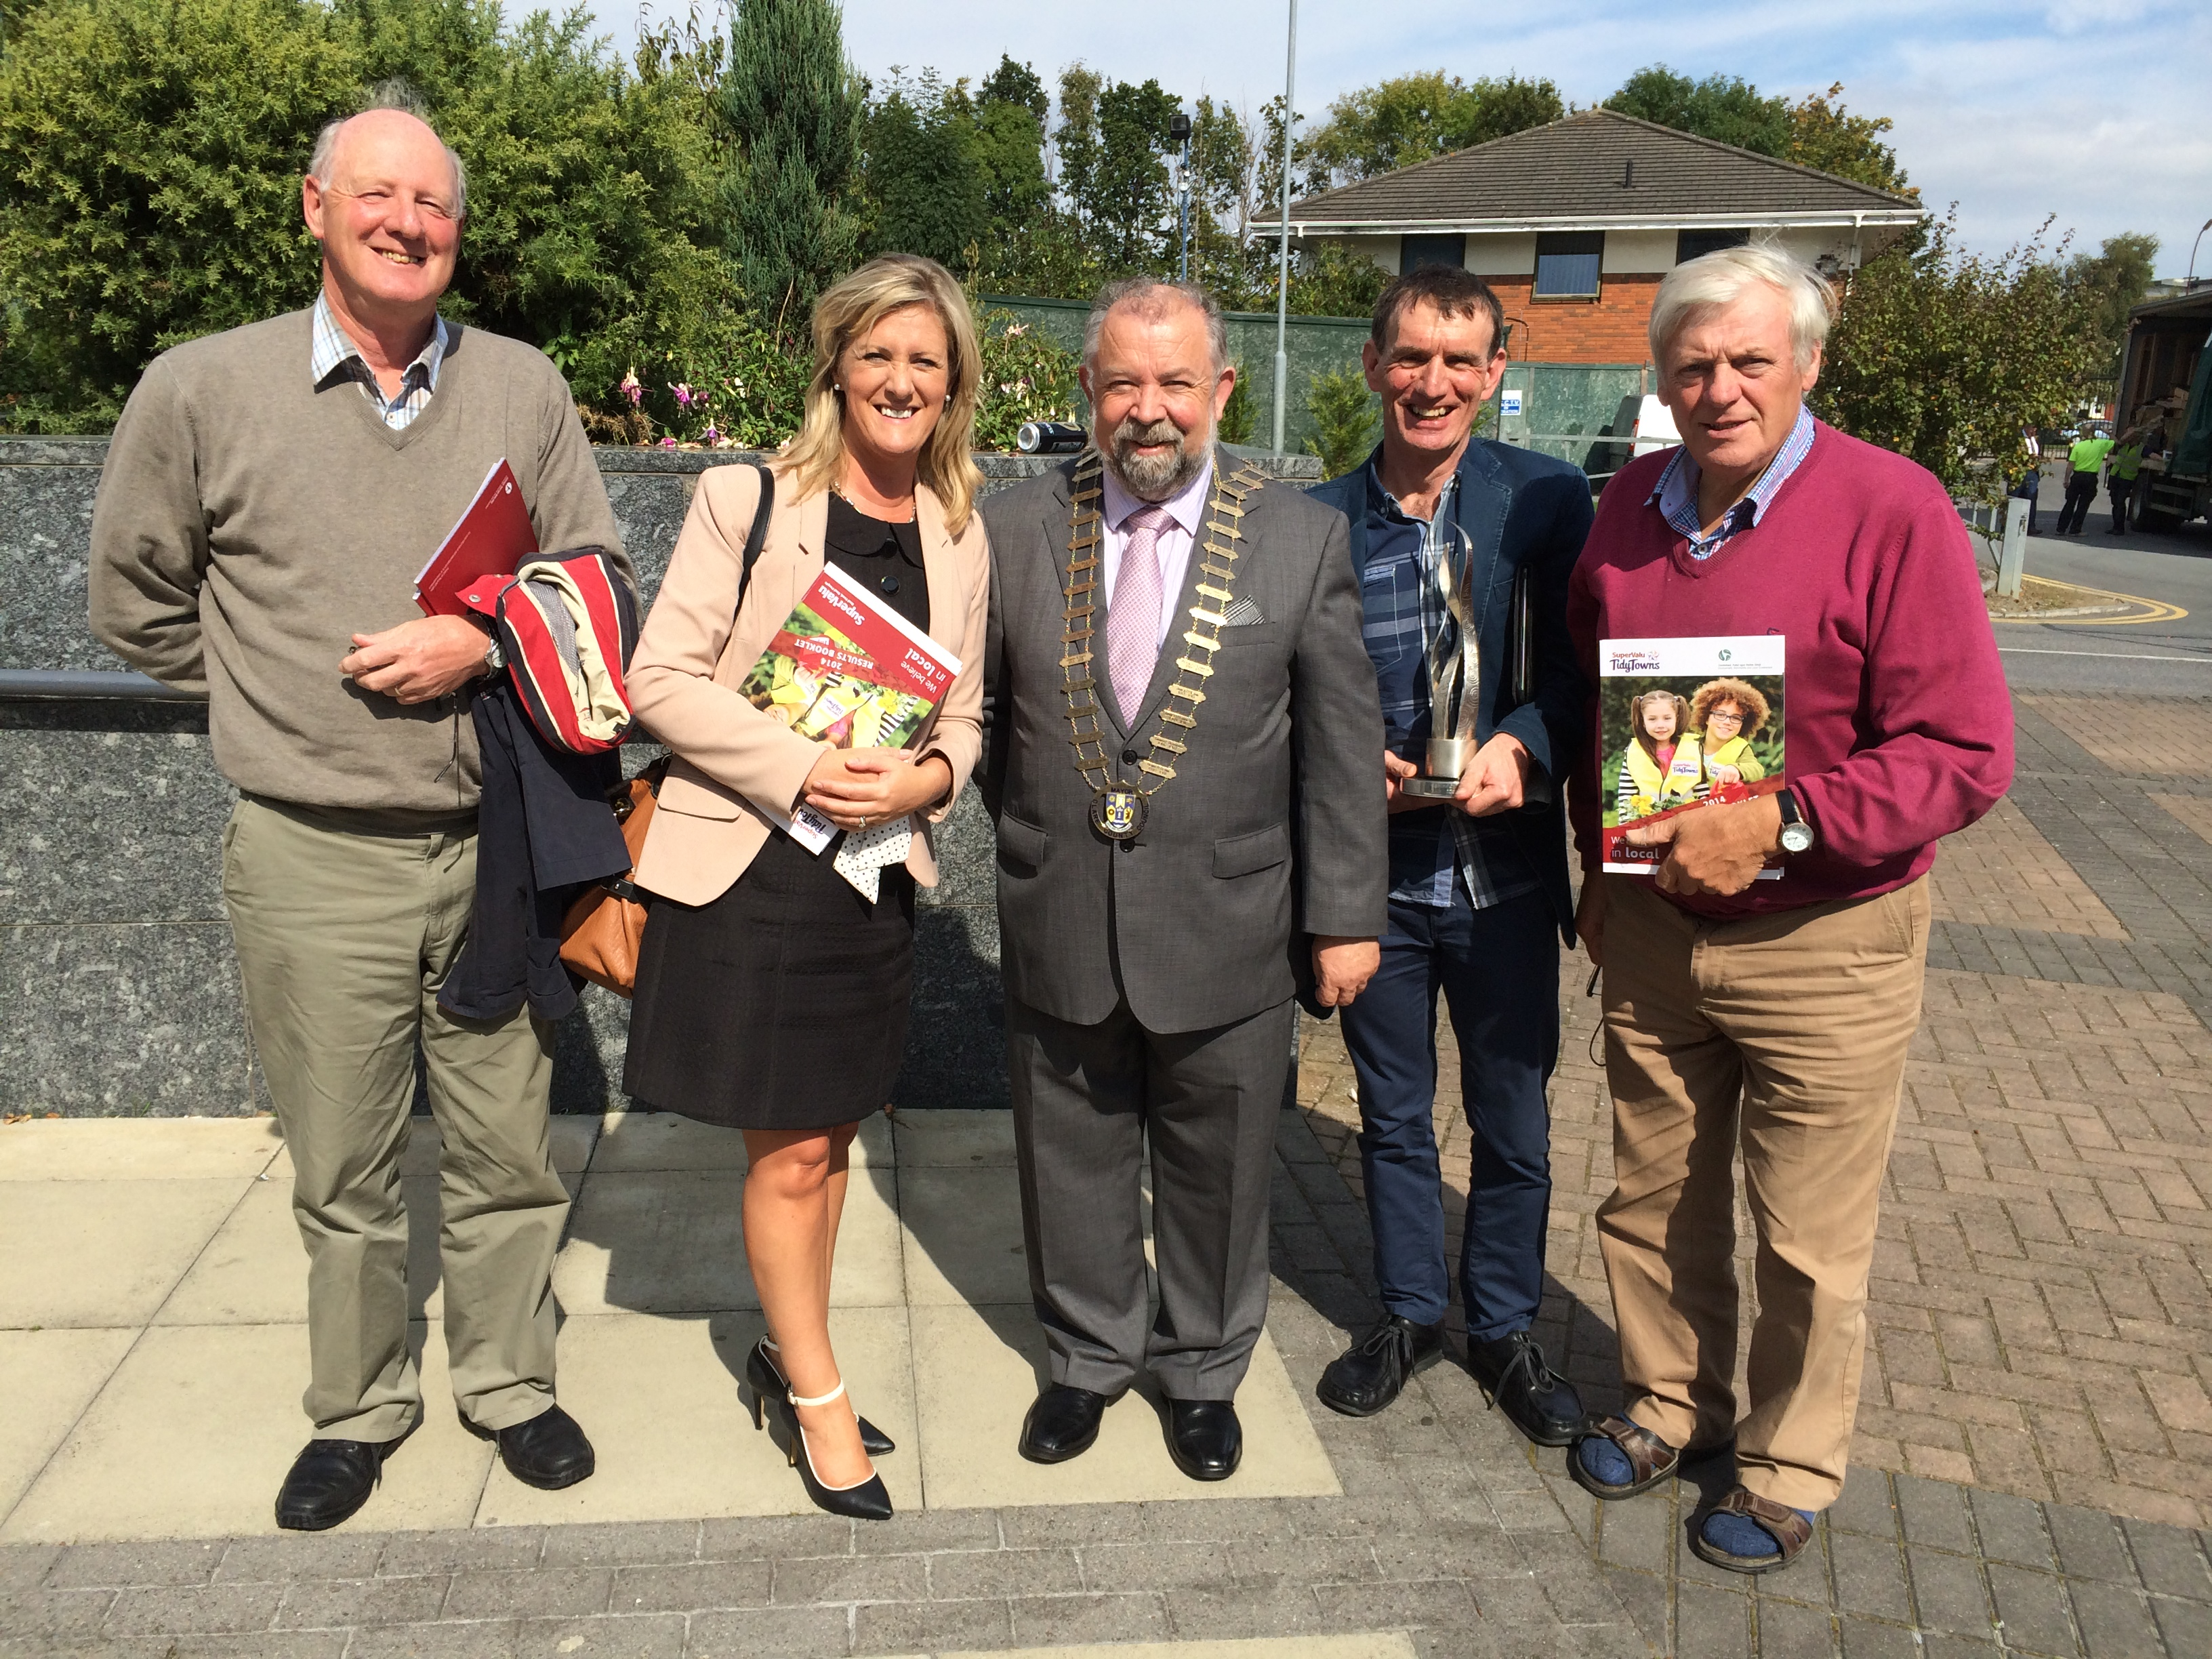 Pictured outside The Helix in Dublin following today's National TidyTowns Ceremony (L-R):  Sean Moran, Kilrush Tidy Towns; Anne Haugh, Area Co-Ordinator, West Clare MD & Director of Service, Clare County Council; John Crowe, Cathaoirleach of Clare Co Council; Paul Edson, Chairperson, Kilrush Tidy Towns; and Murt Collins, Kilrush Tidy Towns.